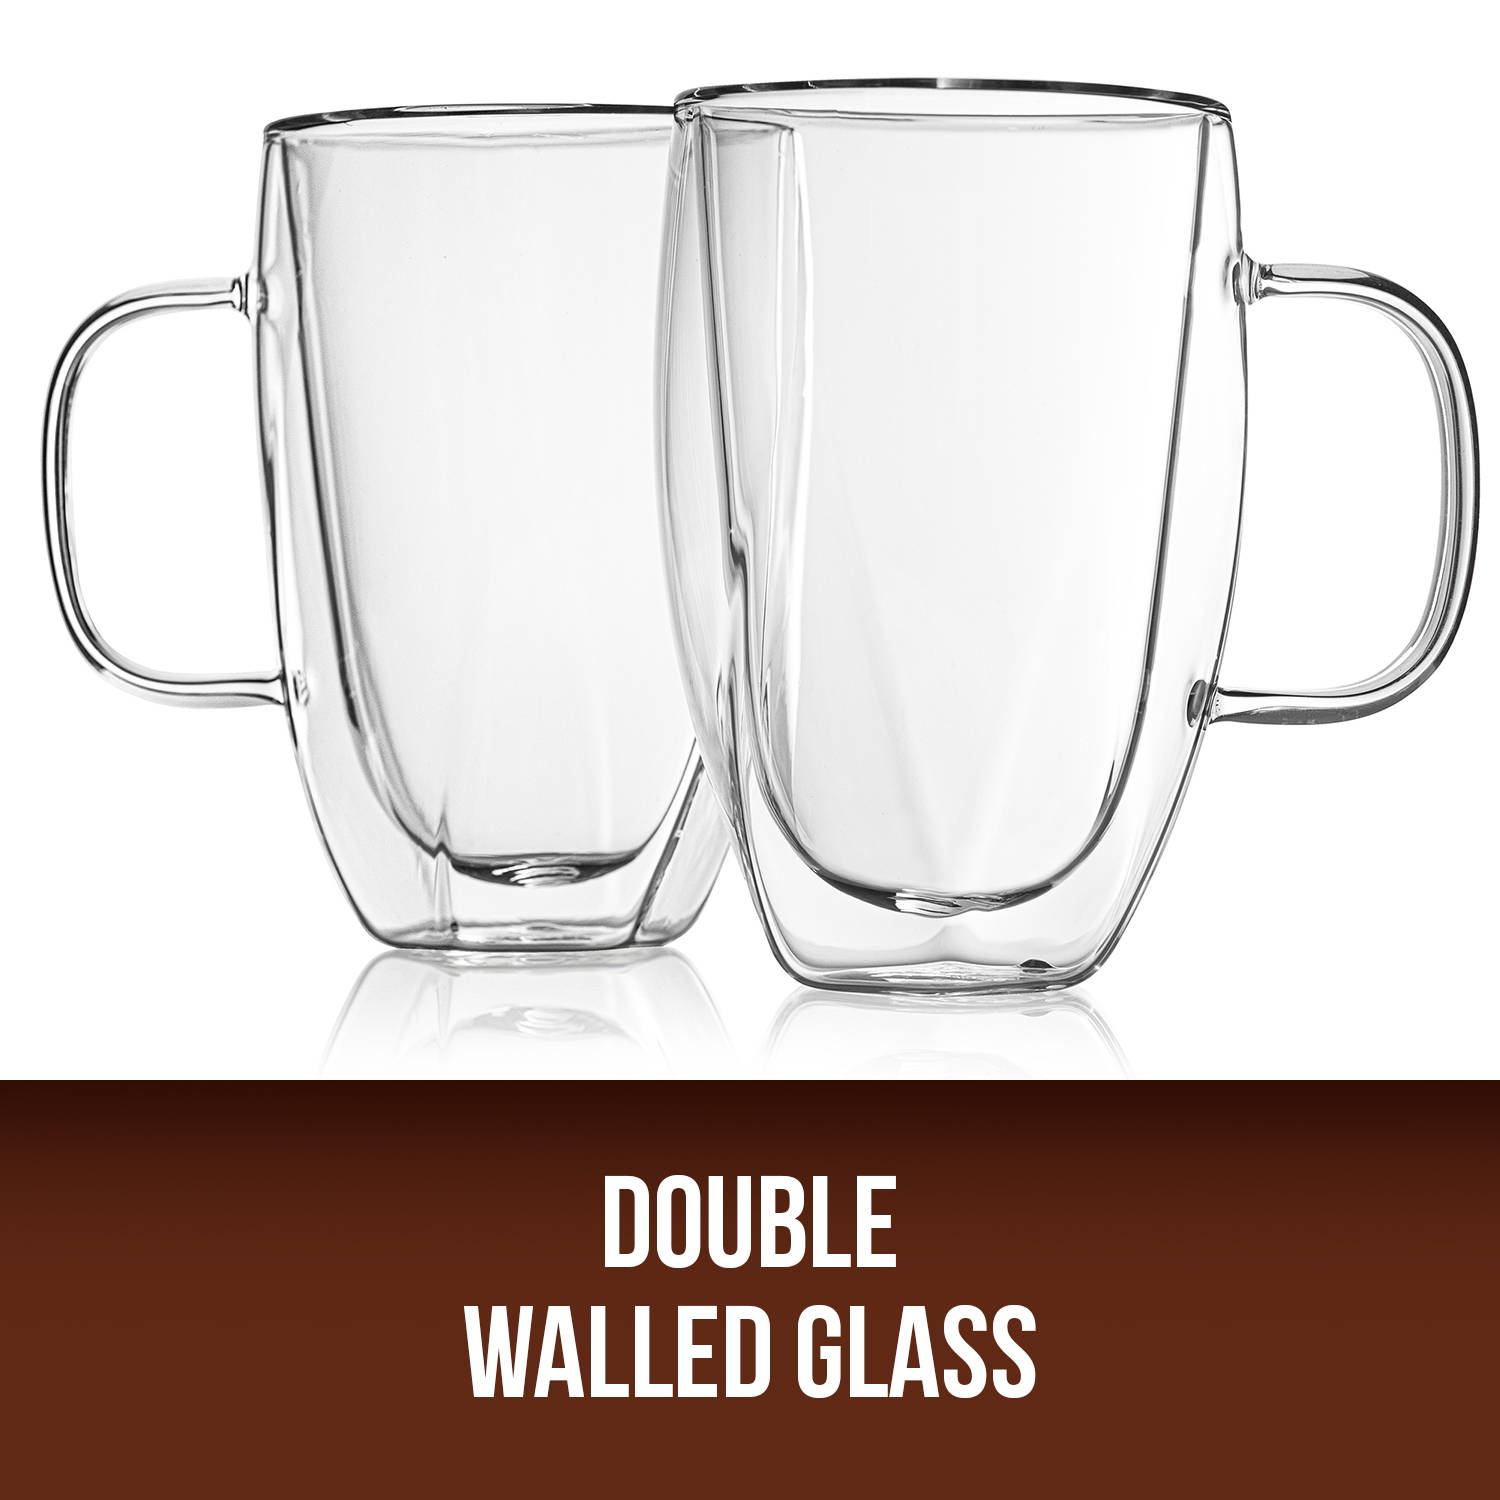 Double Walled Glass